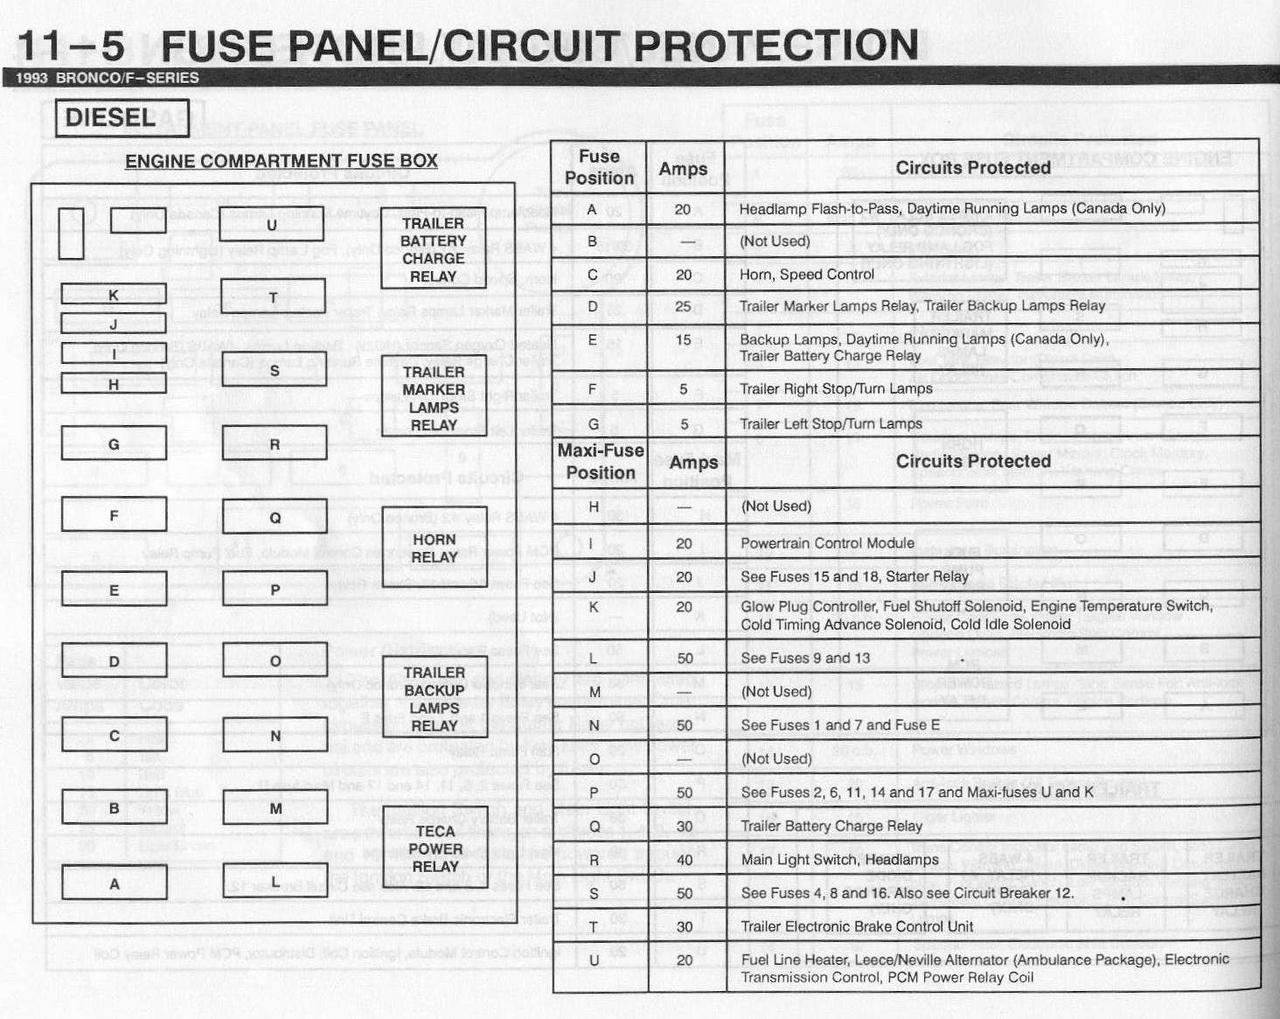 2010 transit connect fuse box diagram wiring diagram2010 ford transit connect fuse box diagram wiring diagrams schematicfuse box on a ford transit connect